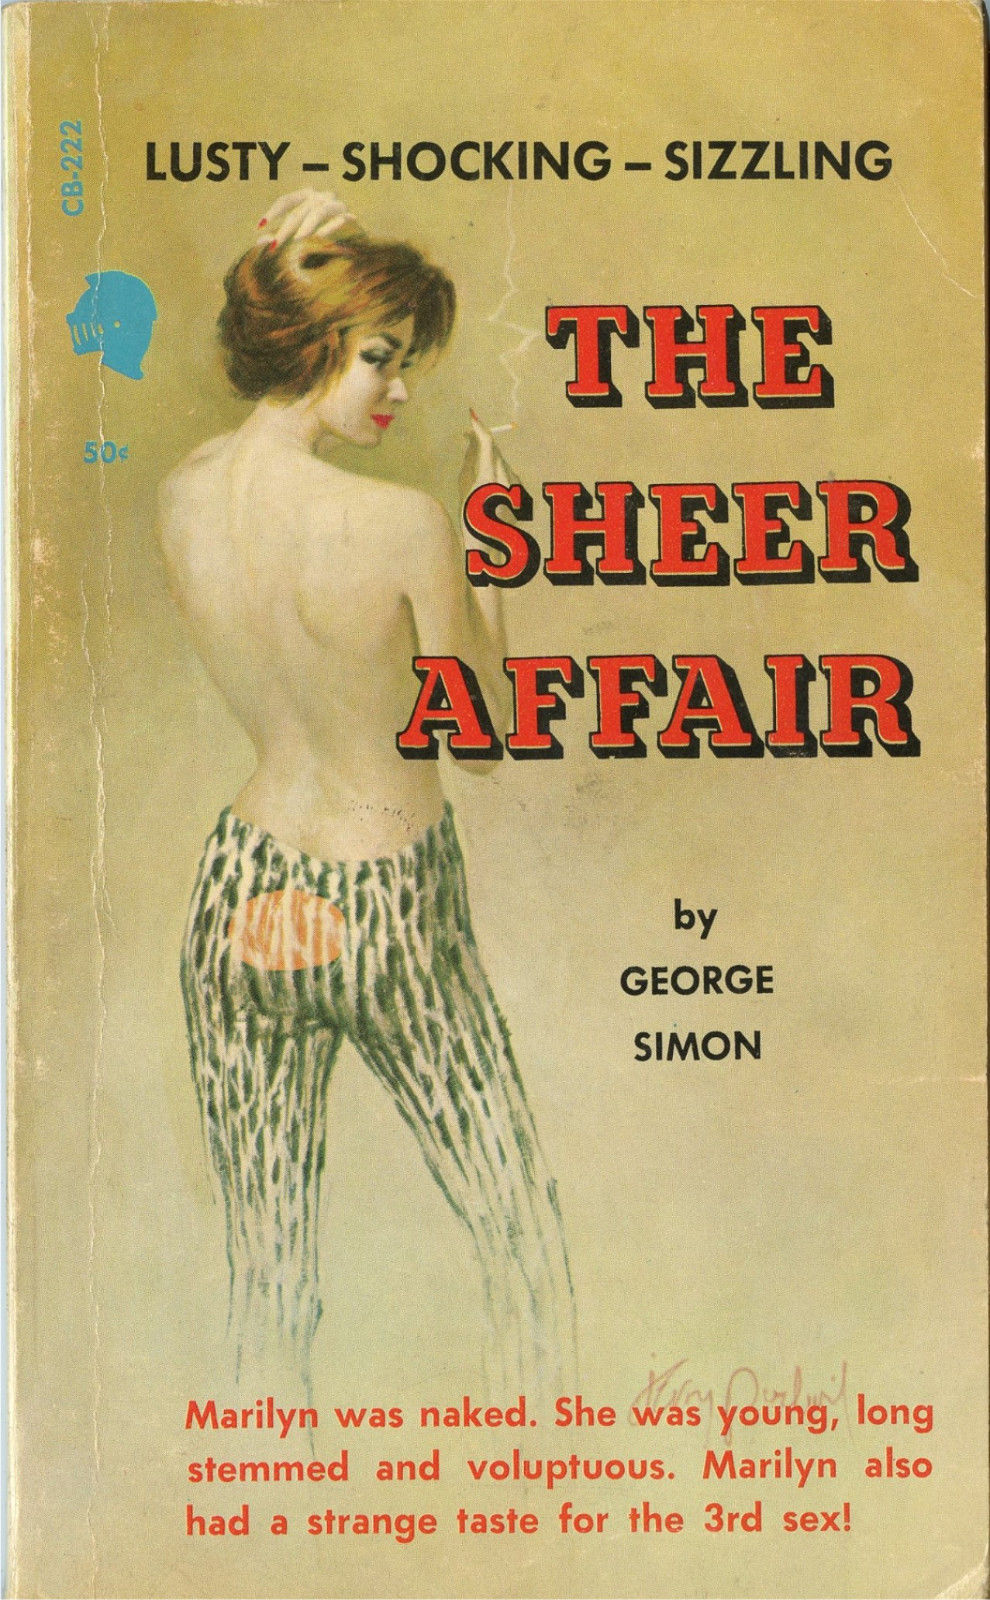 Sheer cover sex